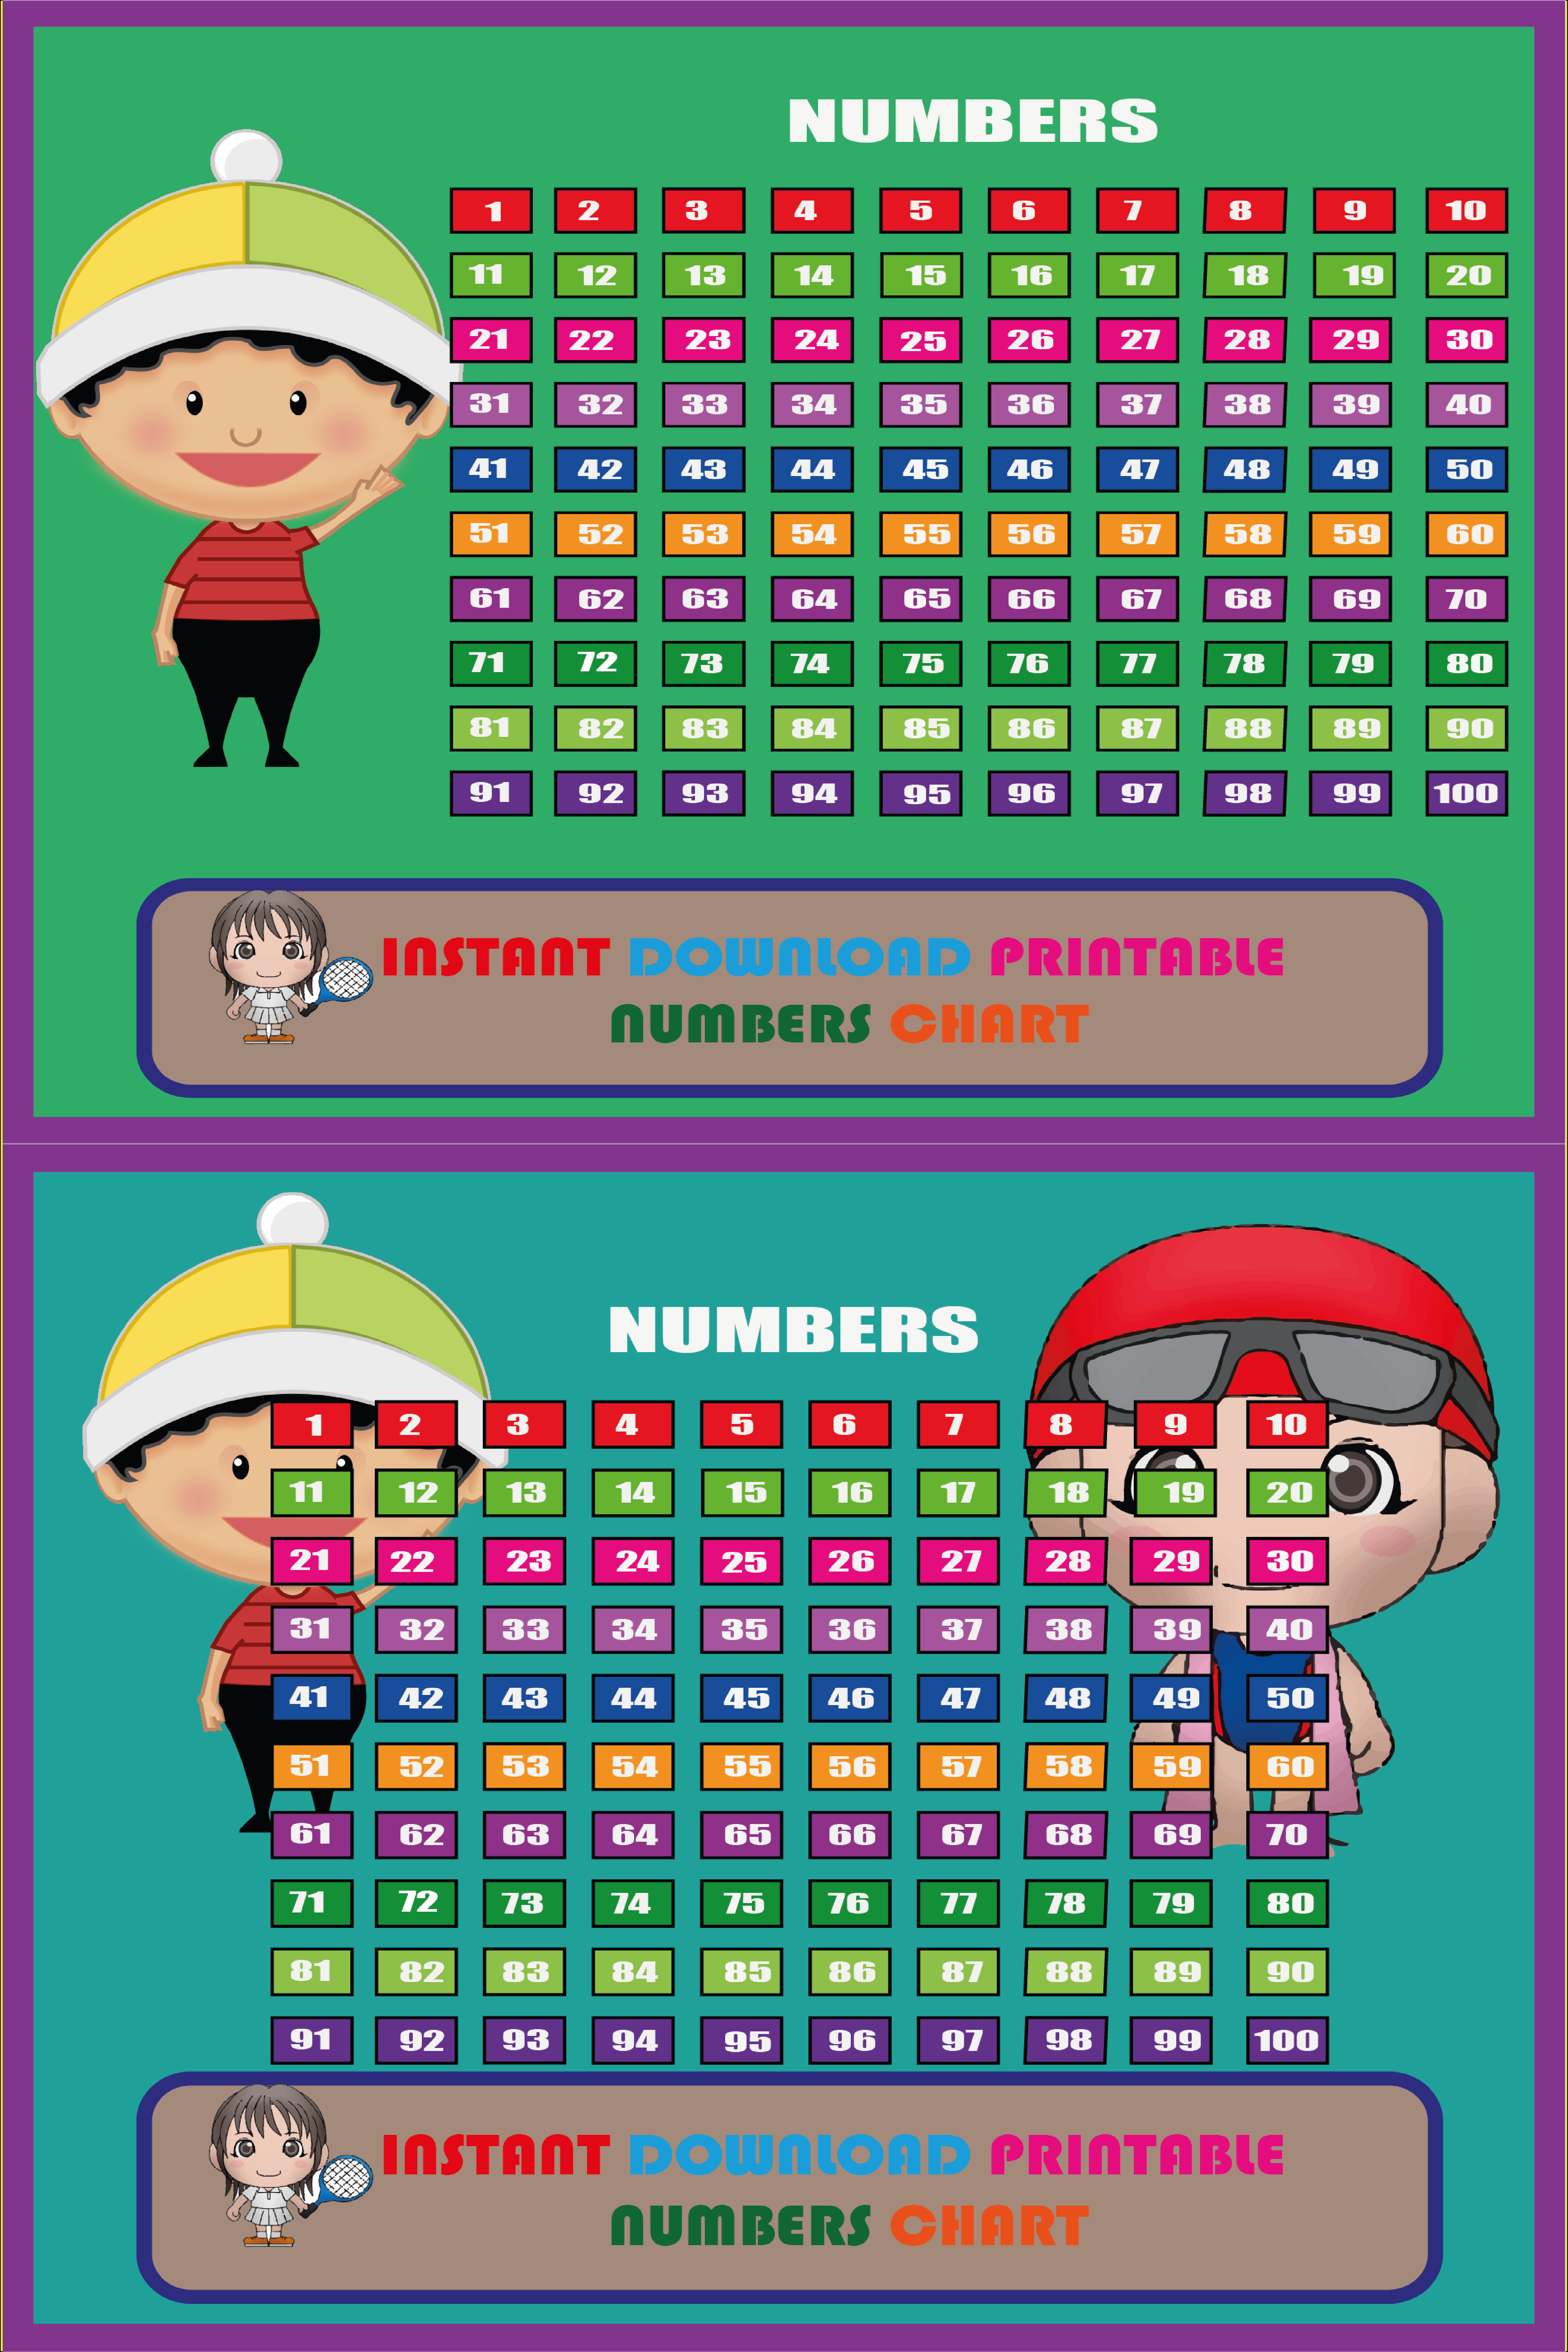 Number Chart In 2021 Education Home Learning Counting To 100 [ 6250 x 4167 Pixel ]